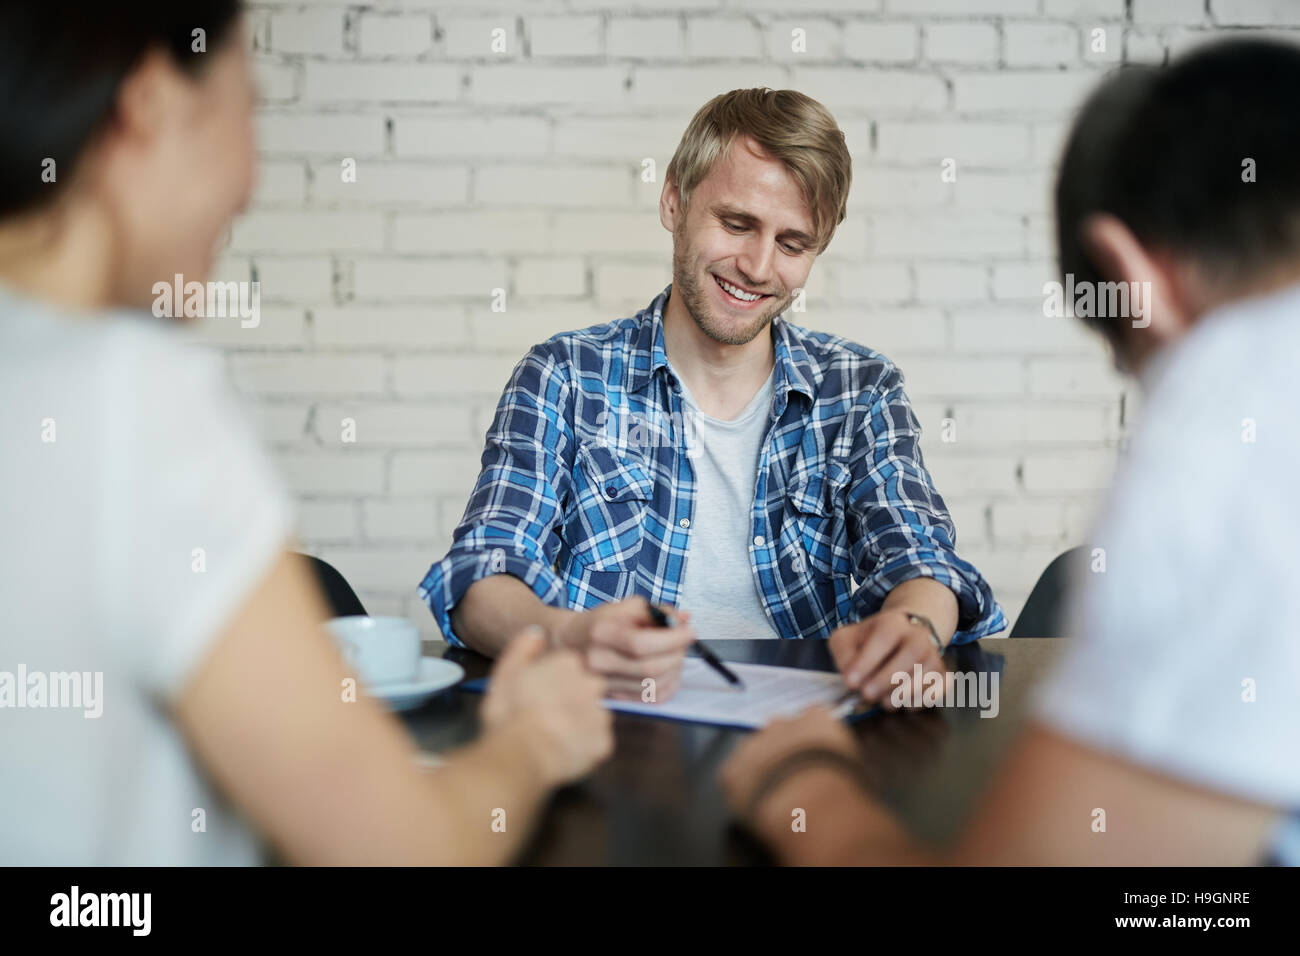 Young candidate for vacancy asking questions of employers - Stock Image